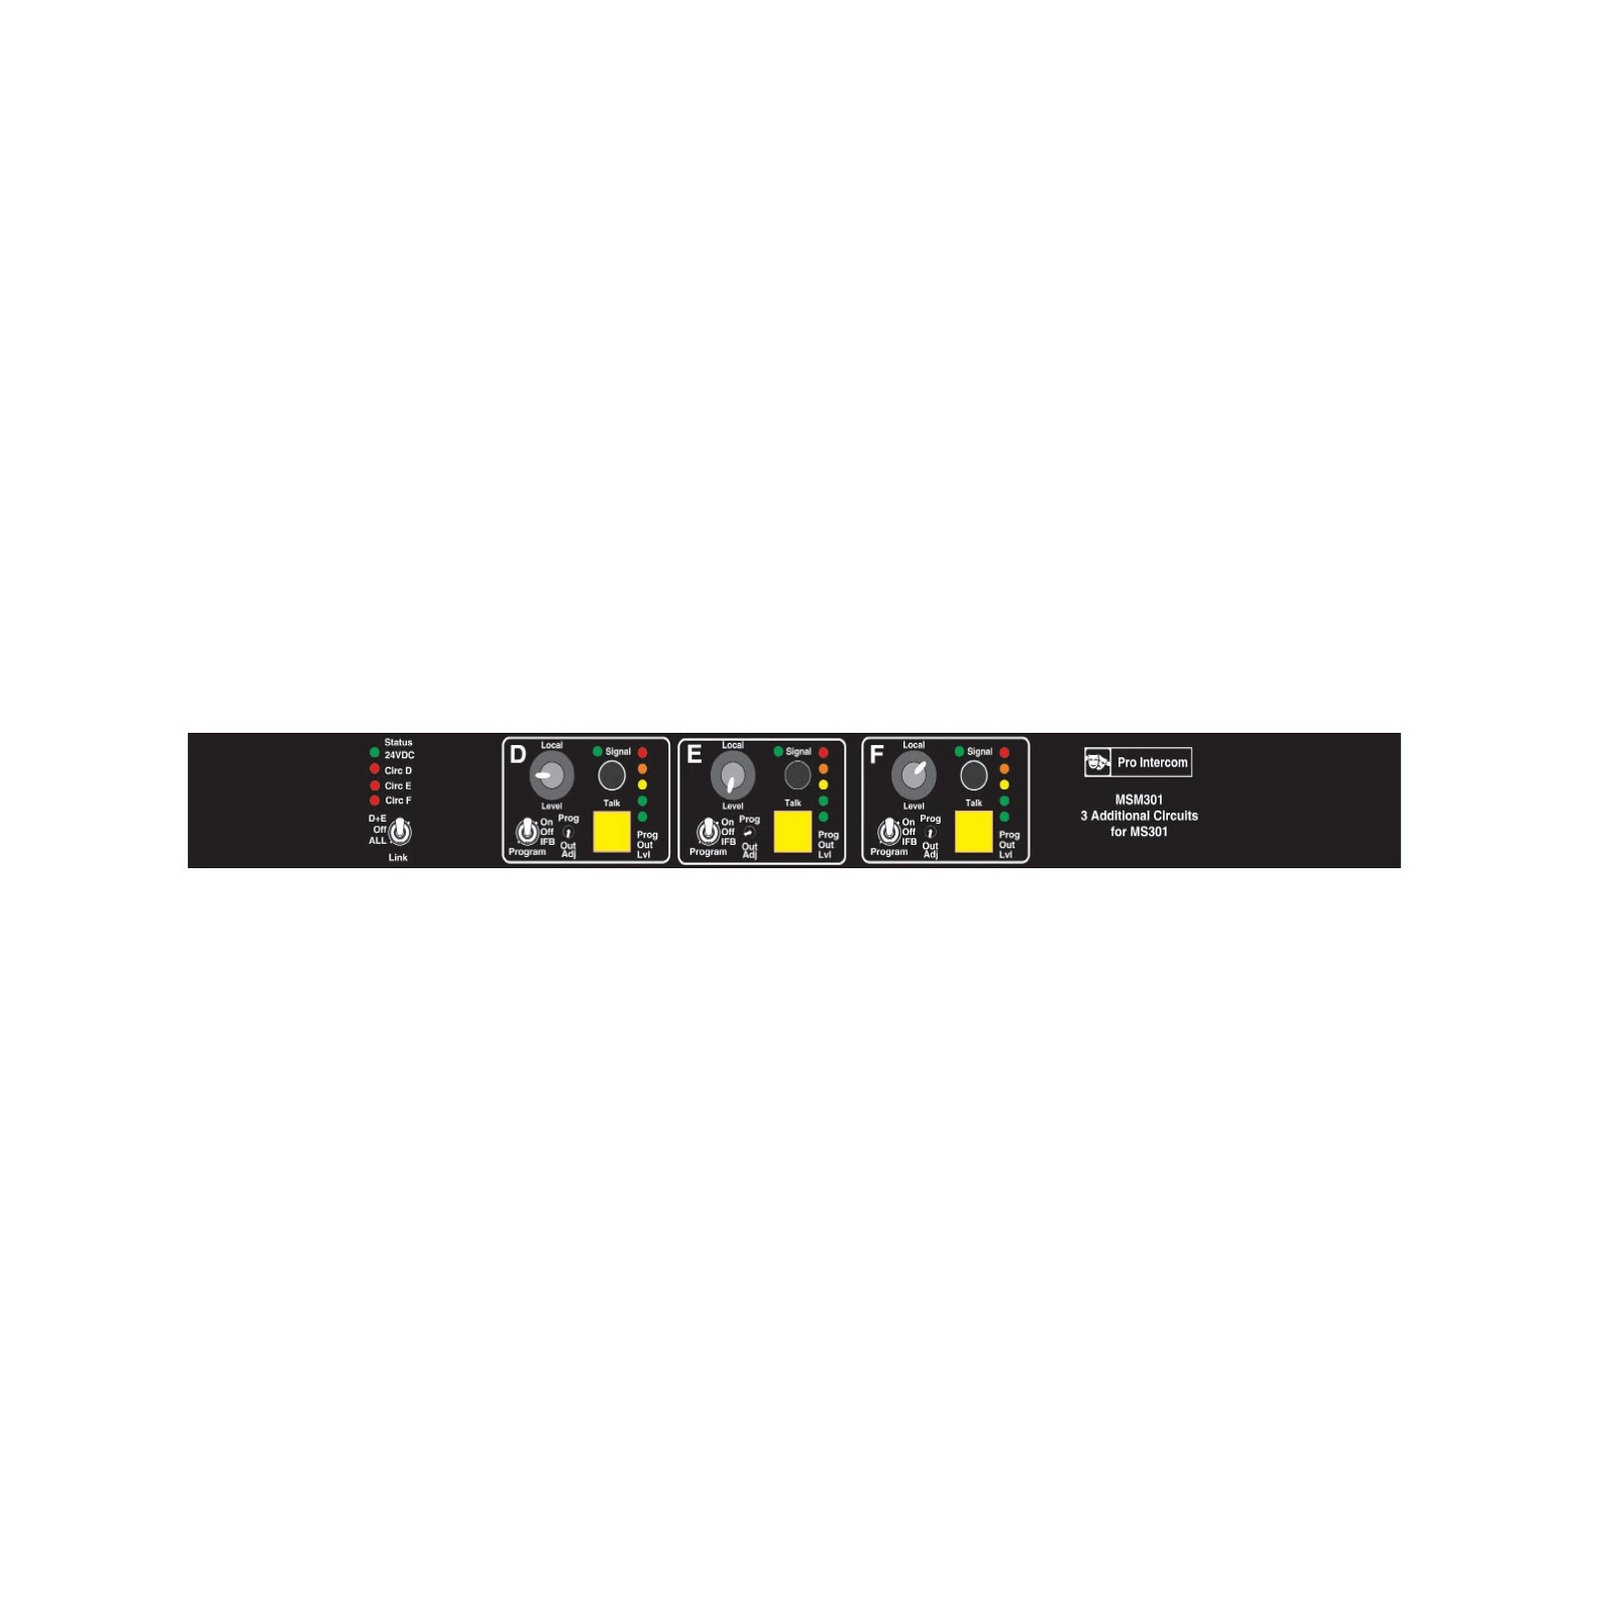 Pro Intercom MSM301 | 3 Circuit Master Station Module for MS301 by Pro Intercom